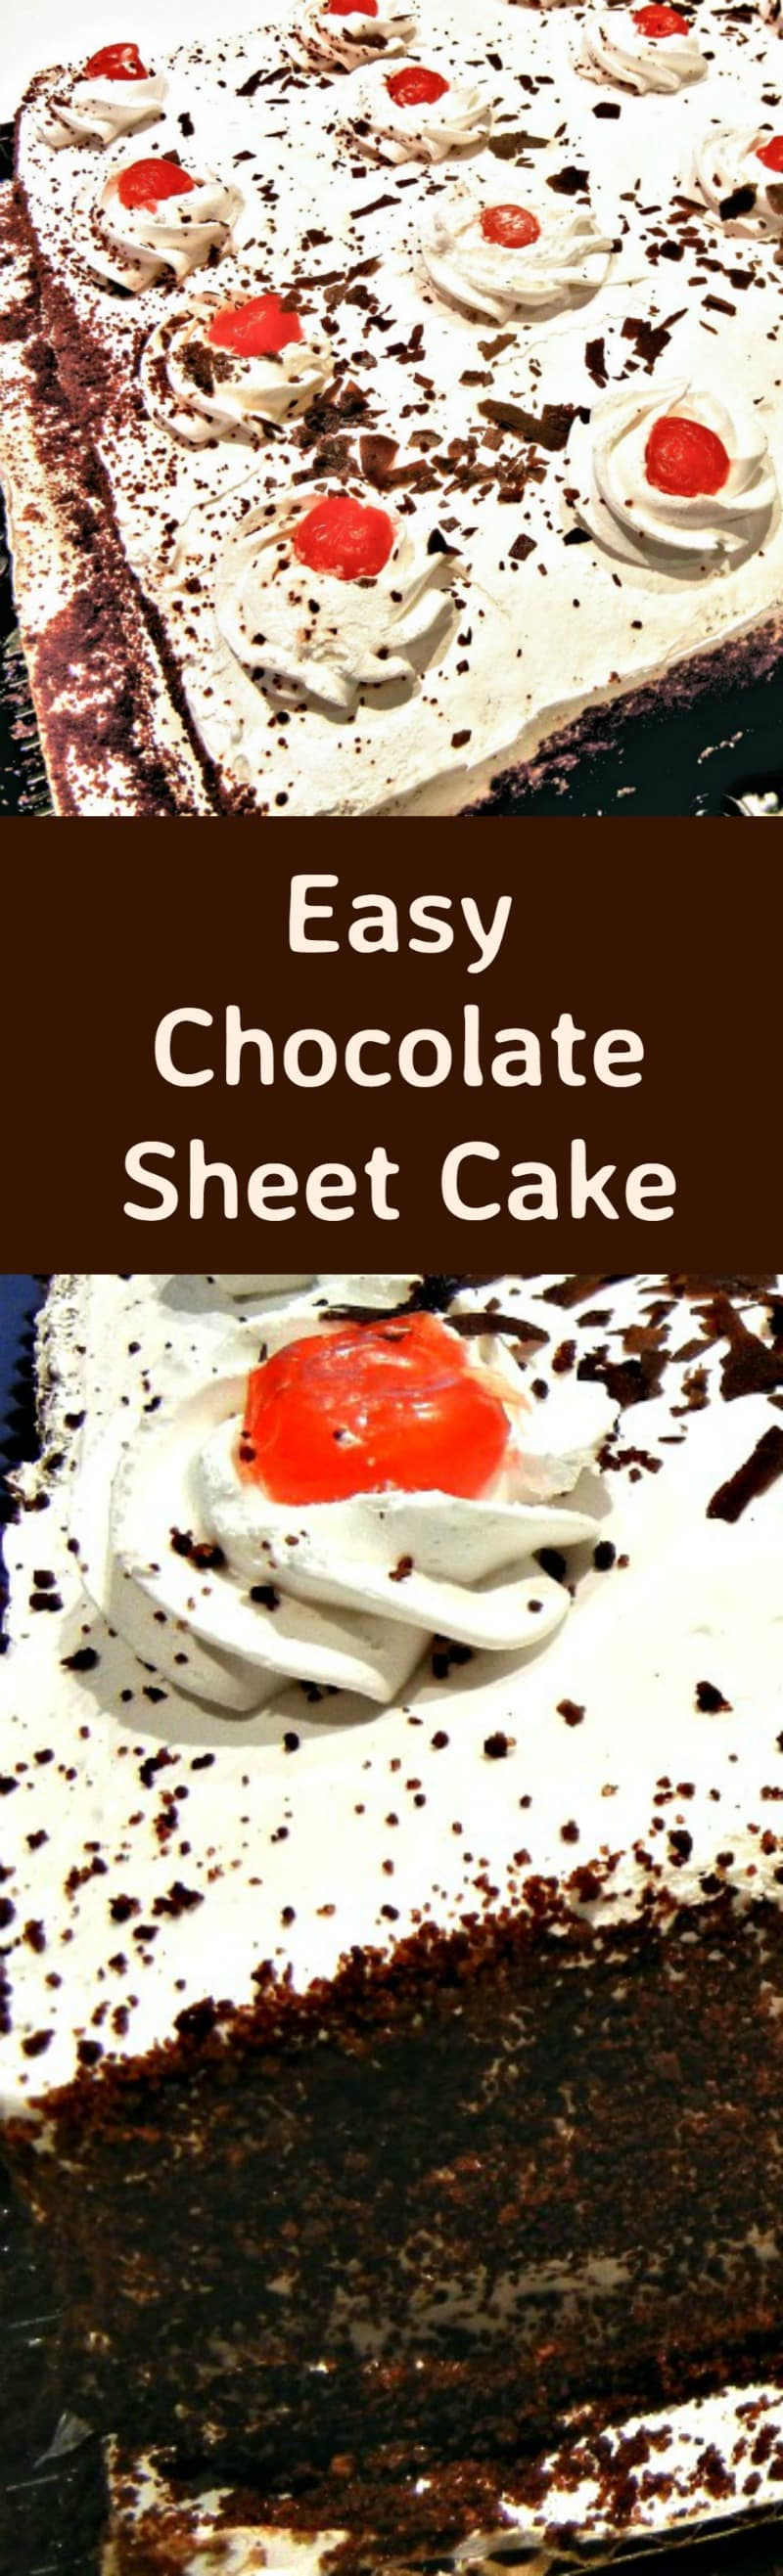 Easy Chocolate Sheet Cake Great for parties, and always a hit! | Lovefoodies.com